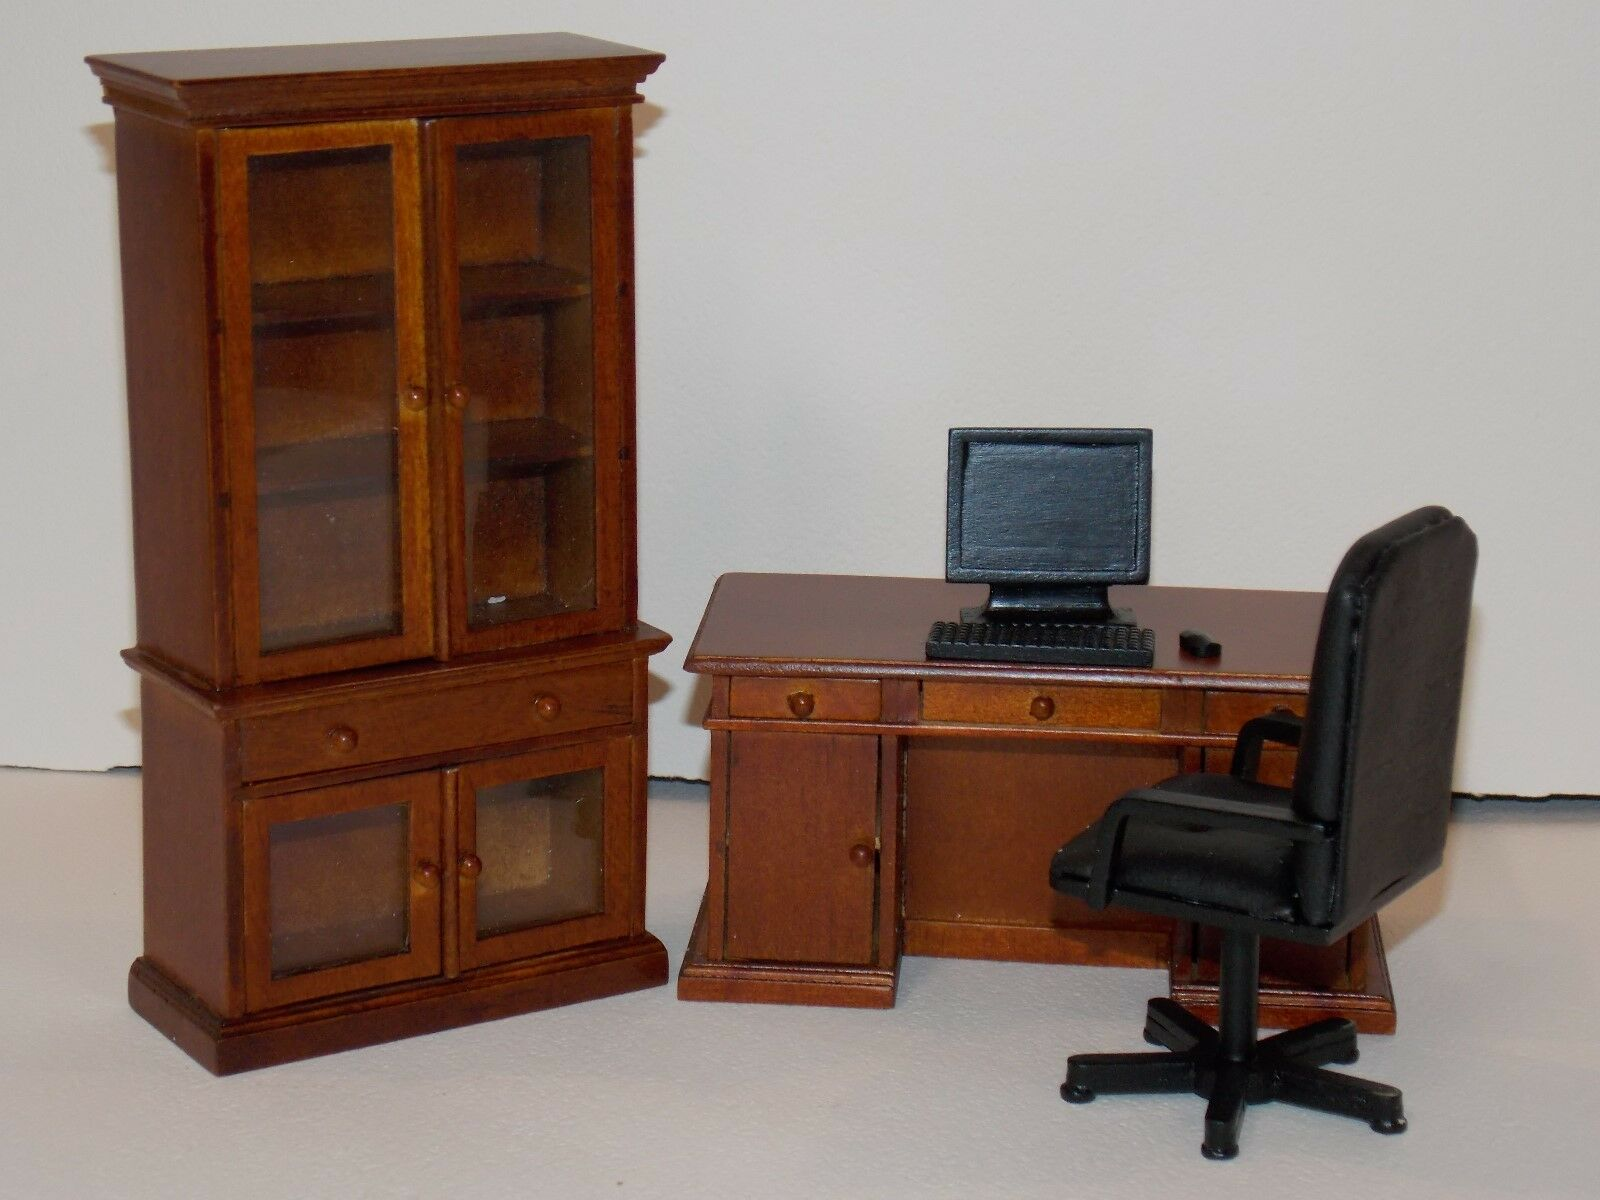 Dollhouse Miniature Office Executive Desk Set Walnut 1:12 one inch scale G1